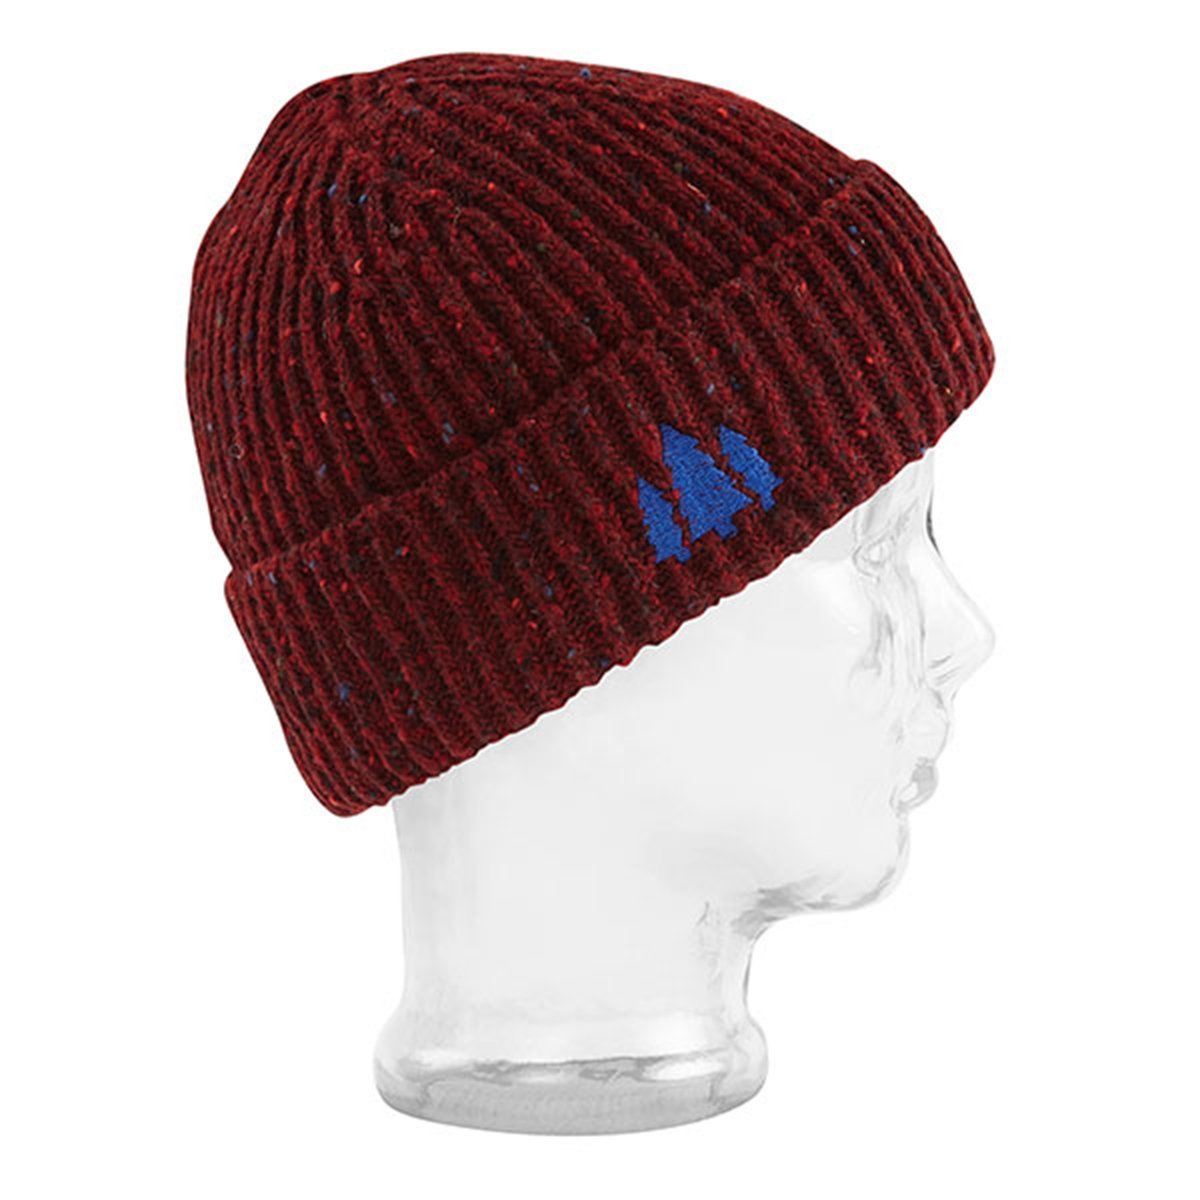 BBCo » Docker Beanie - Abbert | Fishermans Wool Hat | Made in Britain - Dark Red